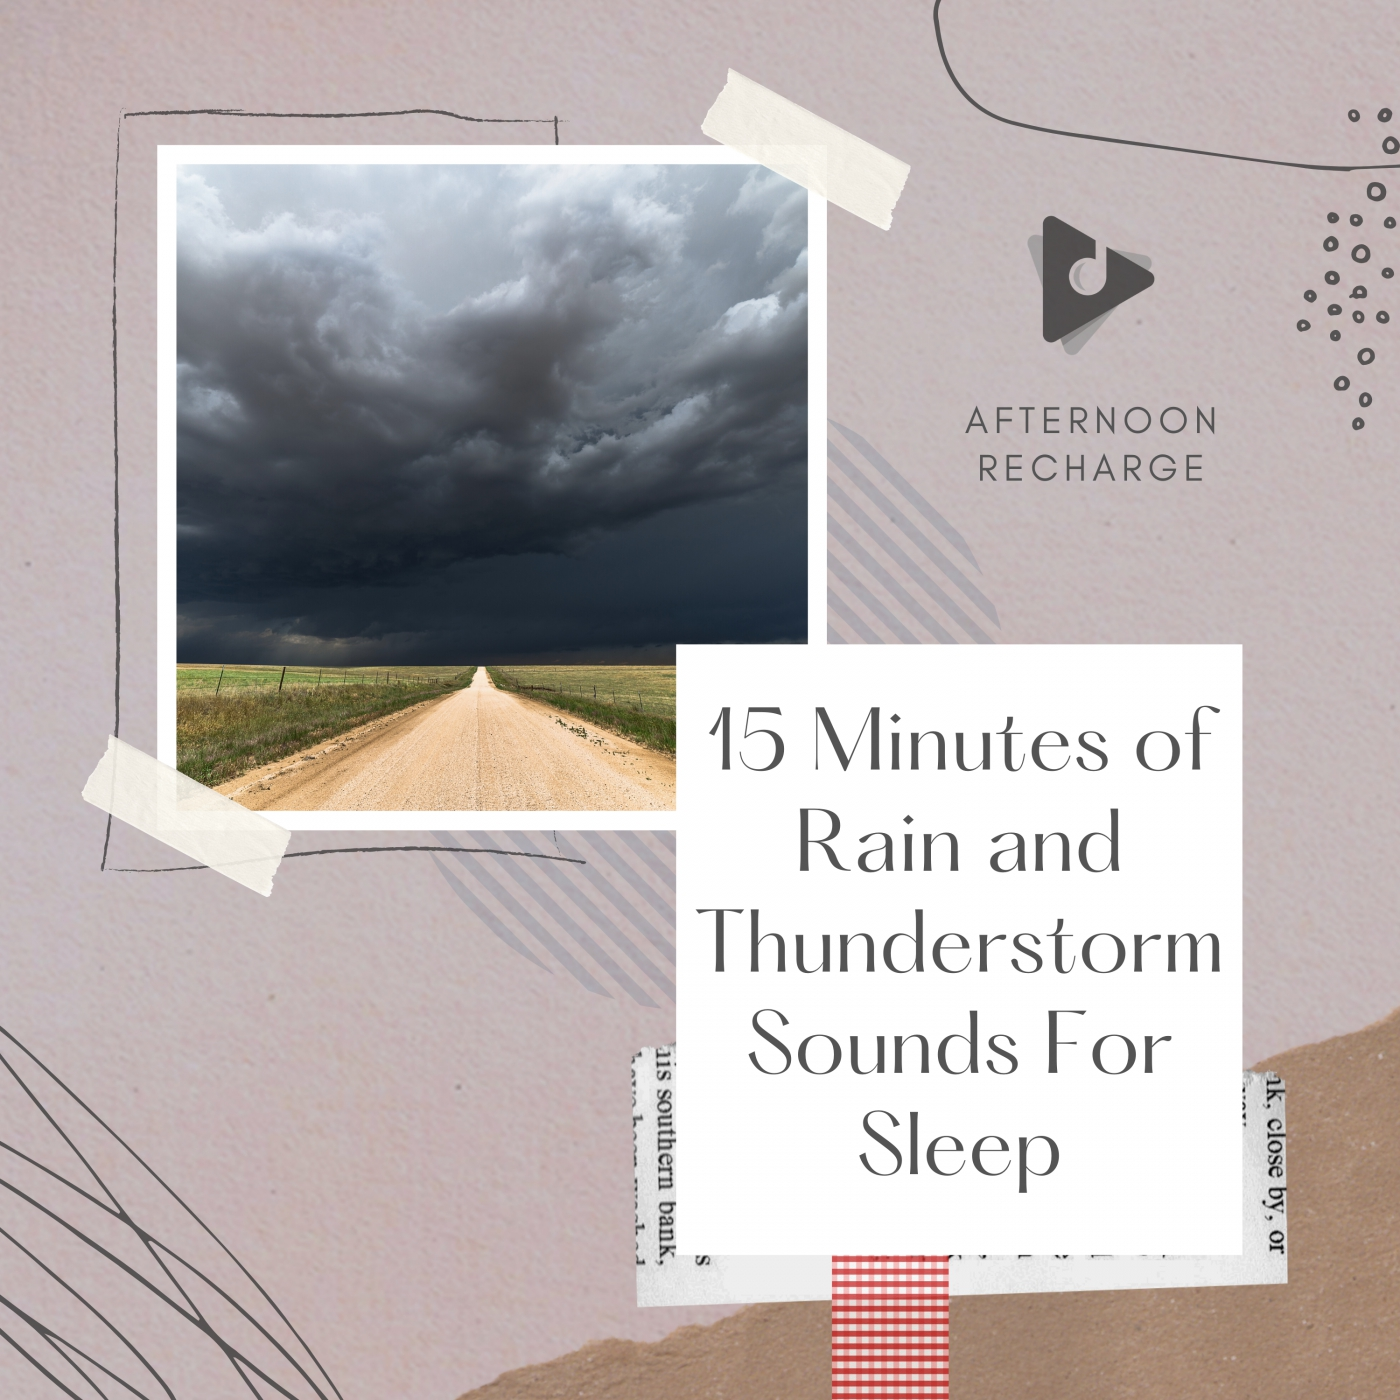 15 Minutes of Rain and Thunderstorm Sounds For Sleep